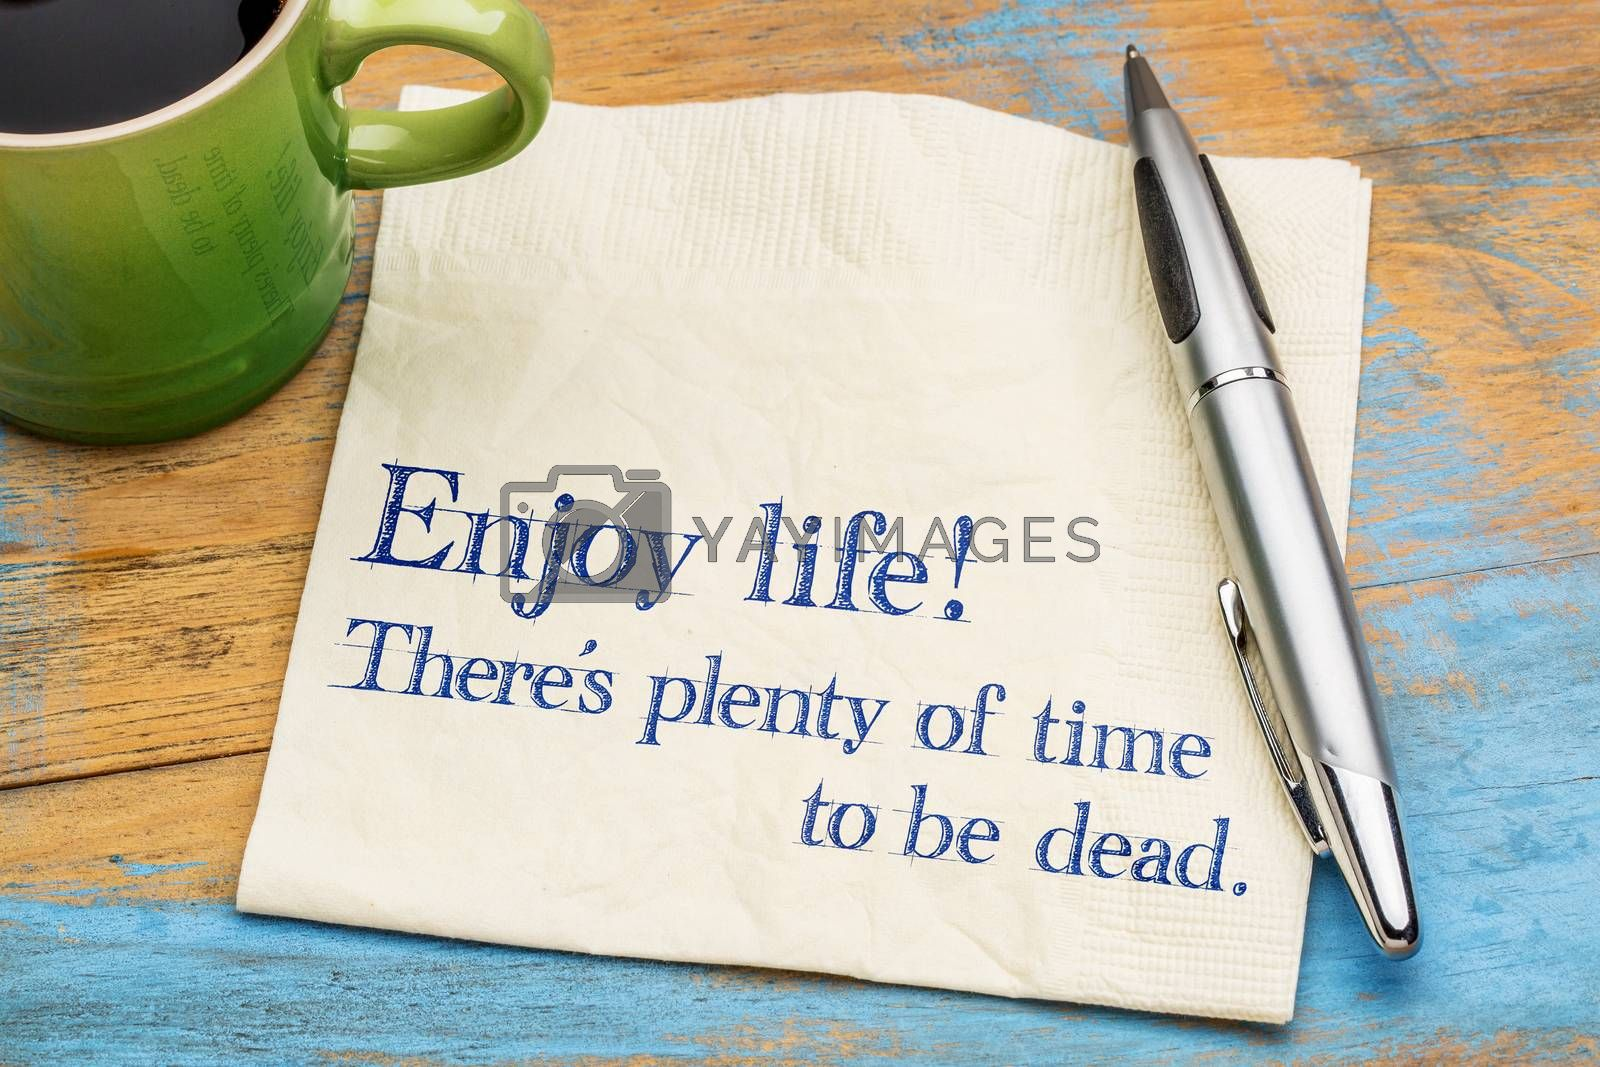 Enjoy life! There is plenty of time to be dead. Handwriting on a napkin with a cup of coffee,